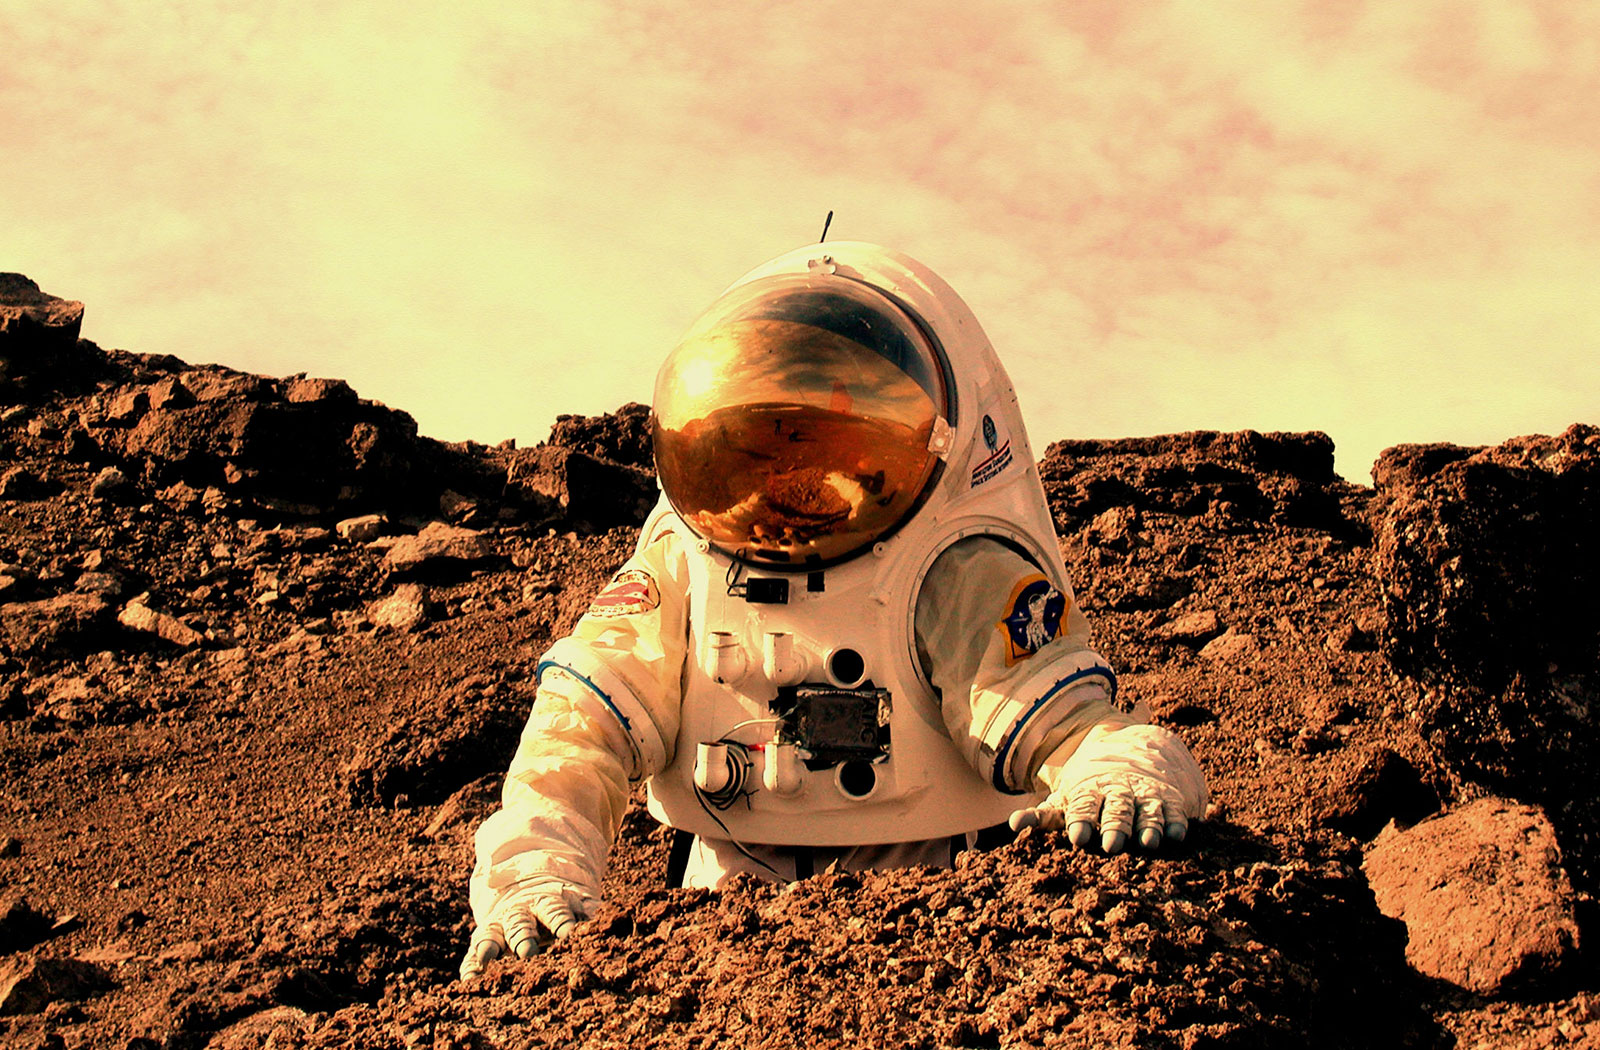 NASA rendition of an Astronaut on Mars.